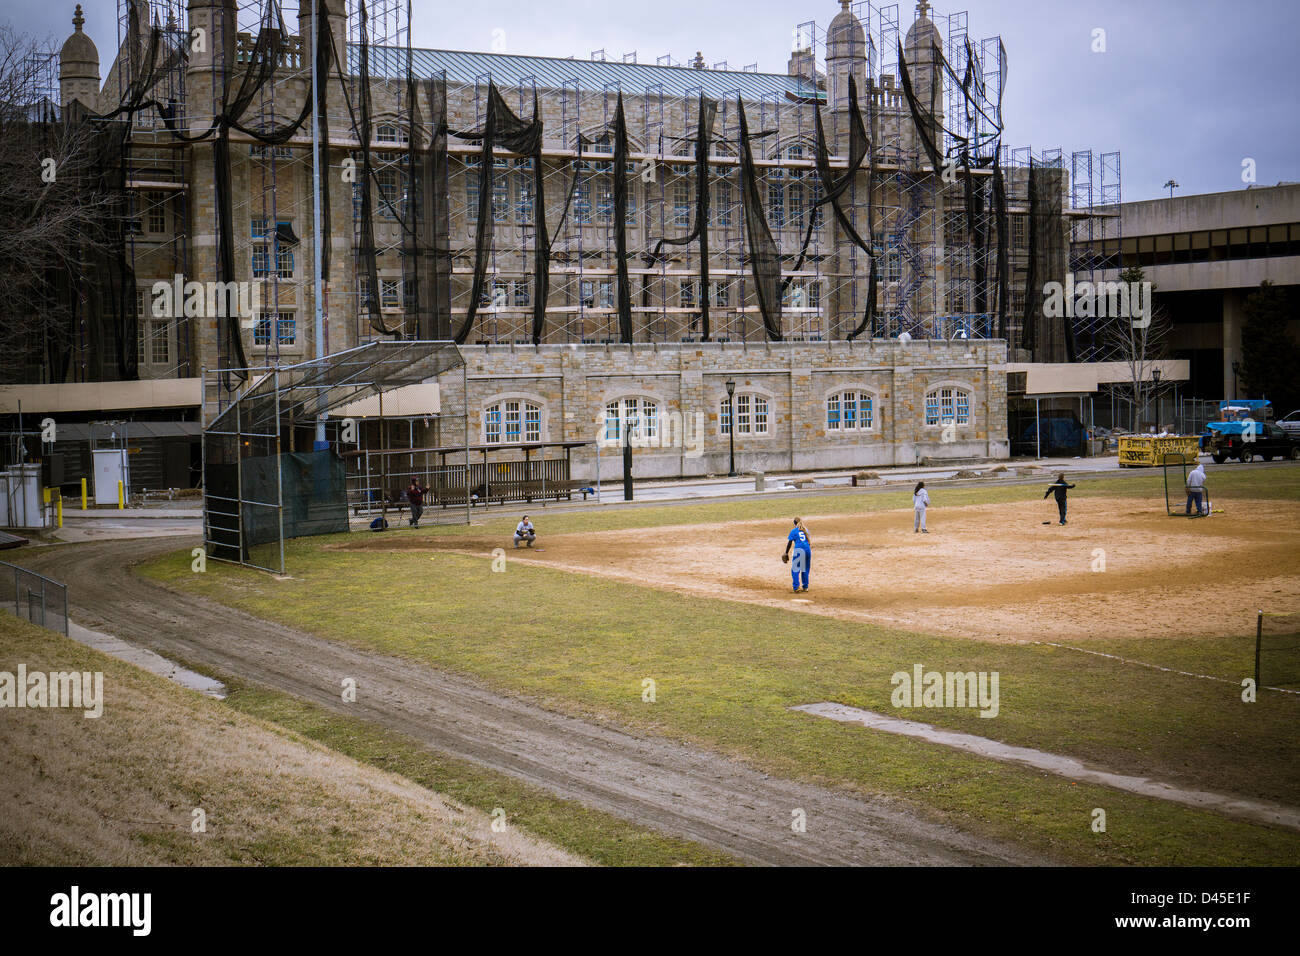 Baseball Field On The Campus Of Lehman College Of The City University Stock Photo Alamy